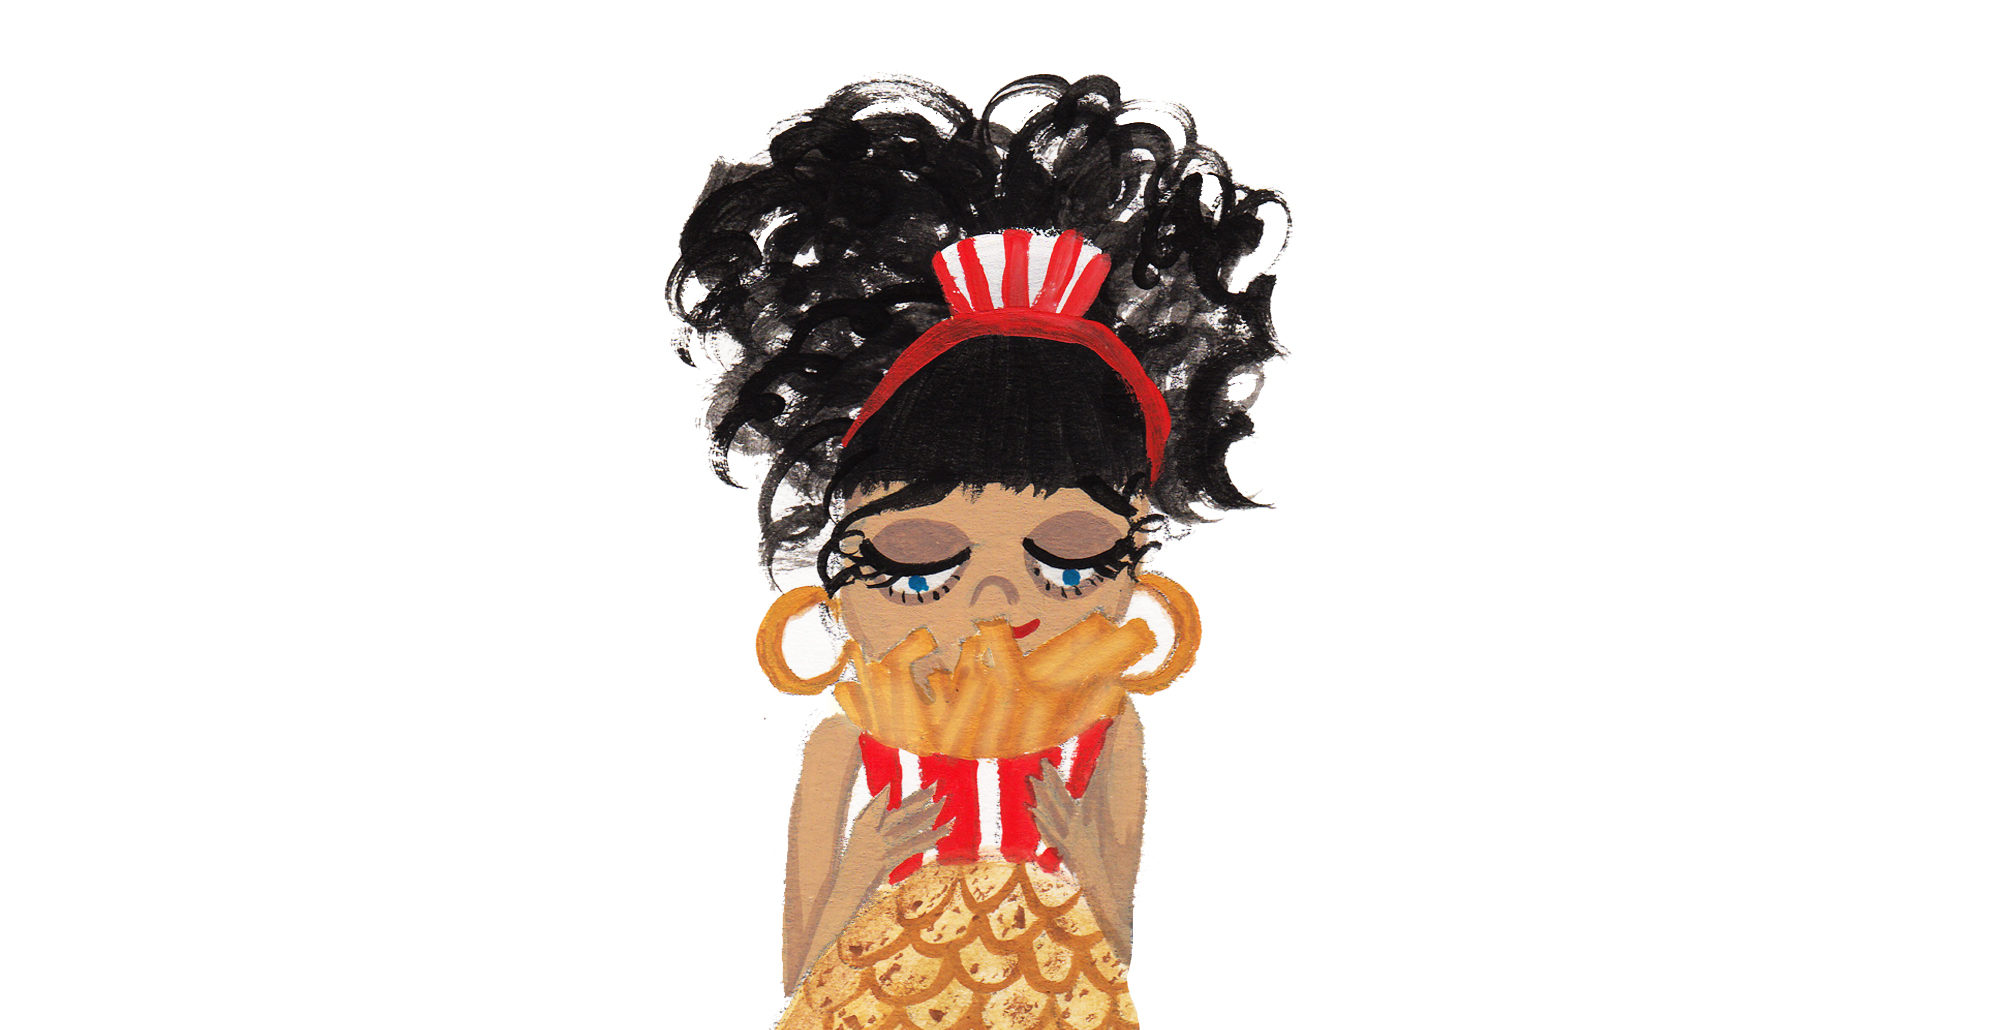 Because French fries go well with everything, and mermaids know it